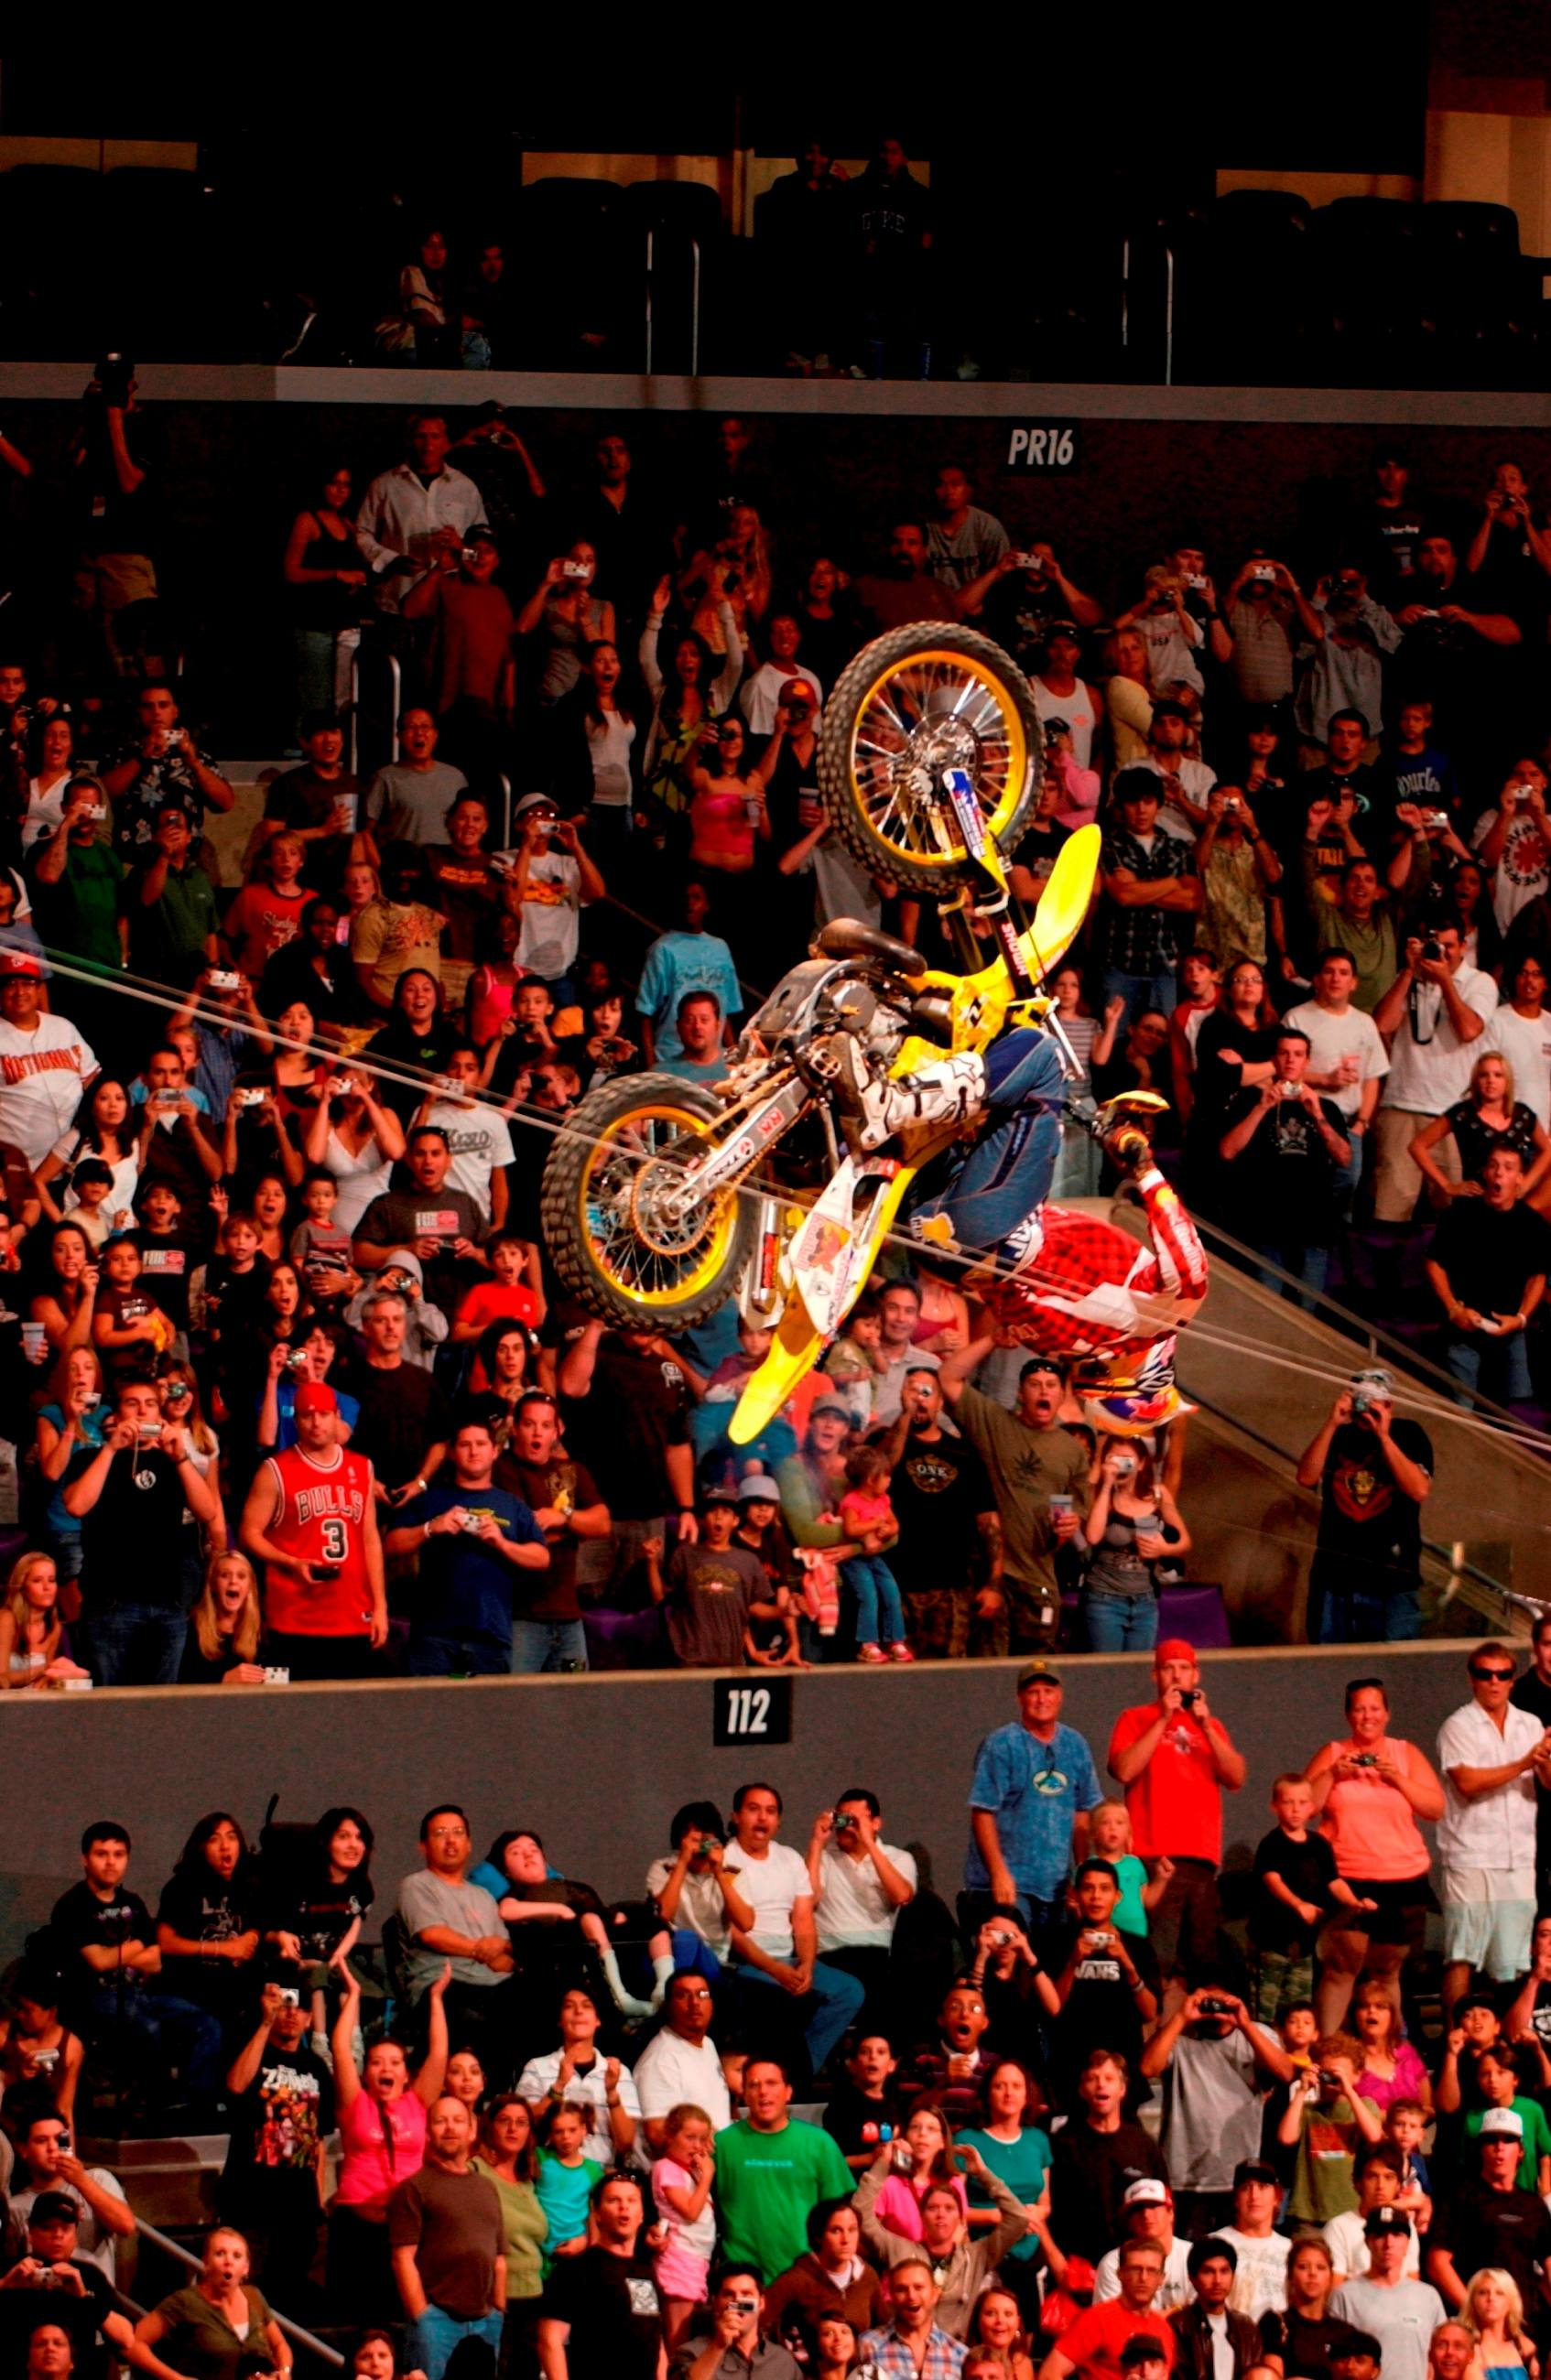 Travis Pastrana lands a Double Backflip at X Games 12 in 2006